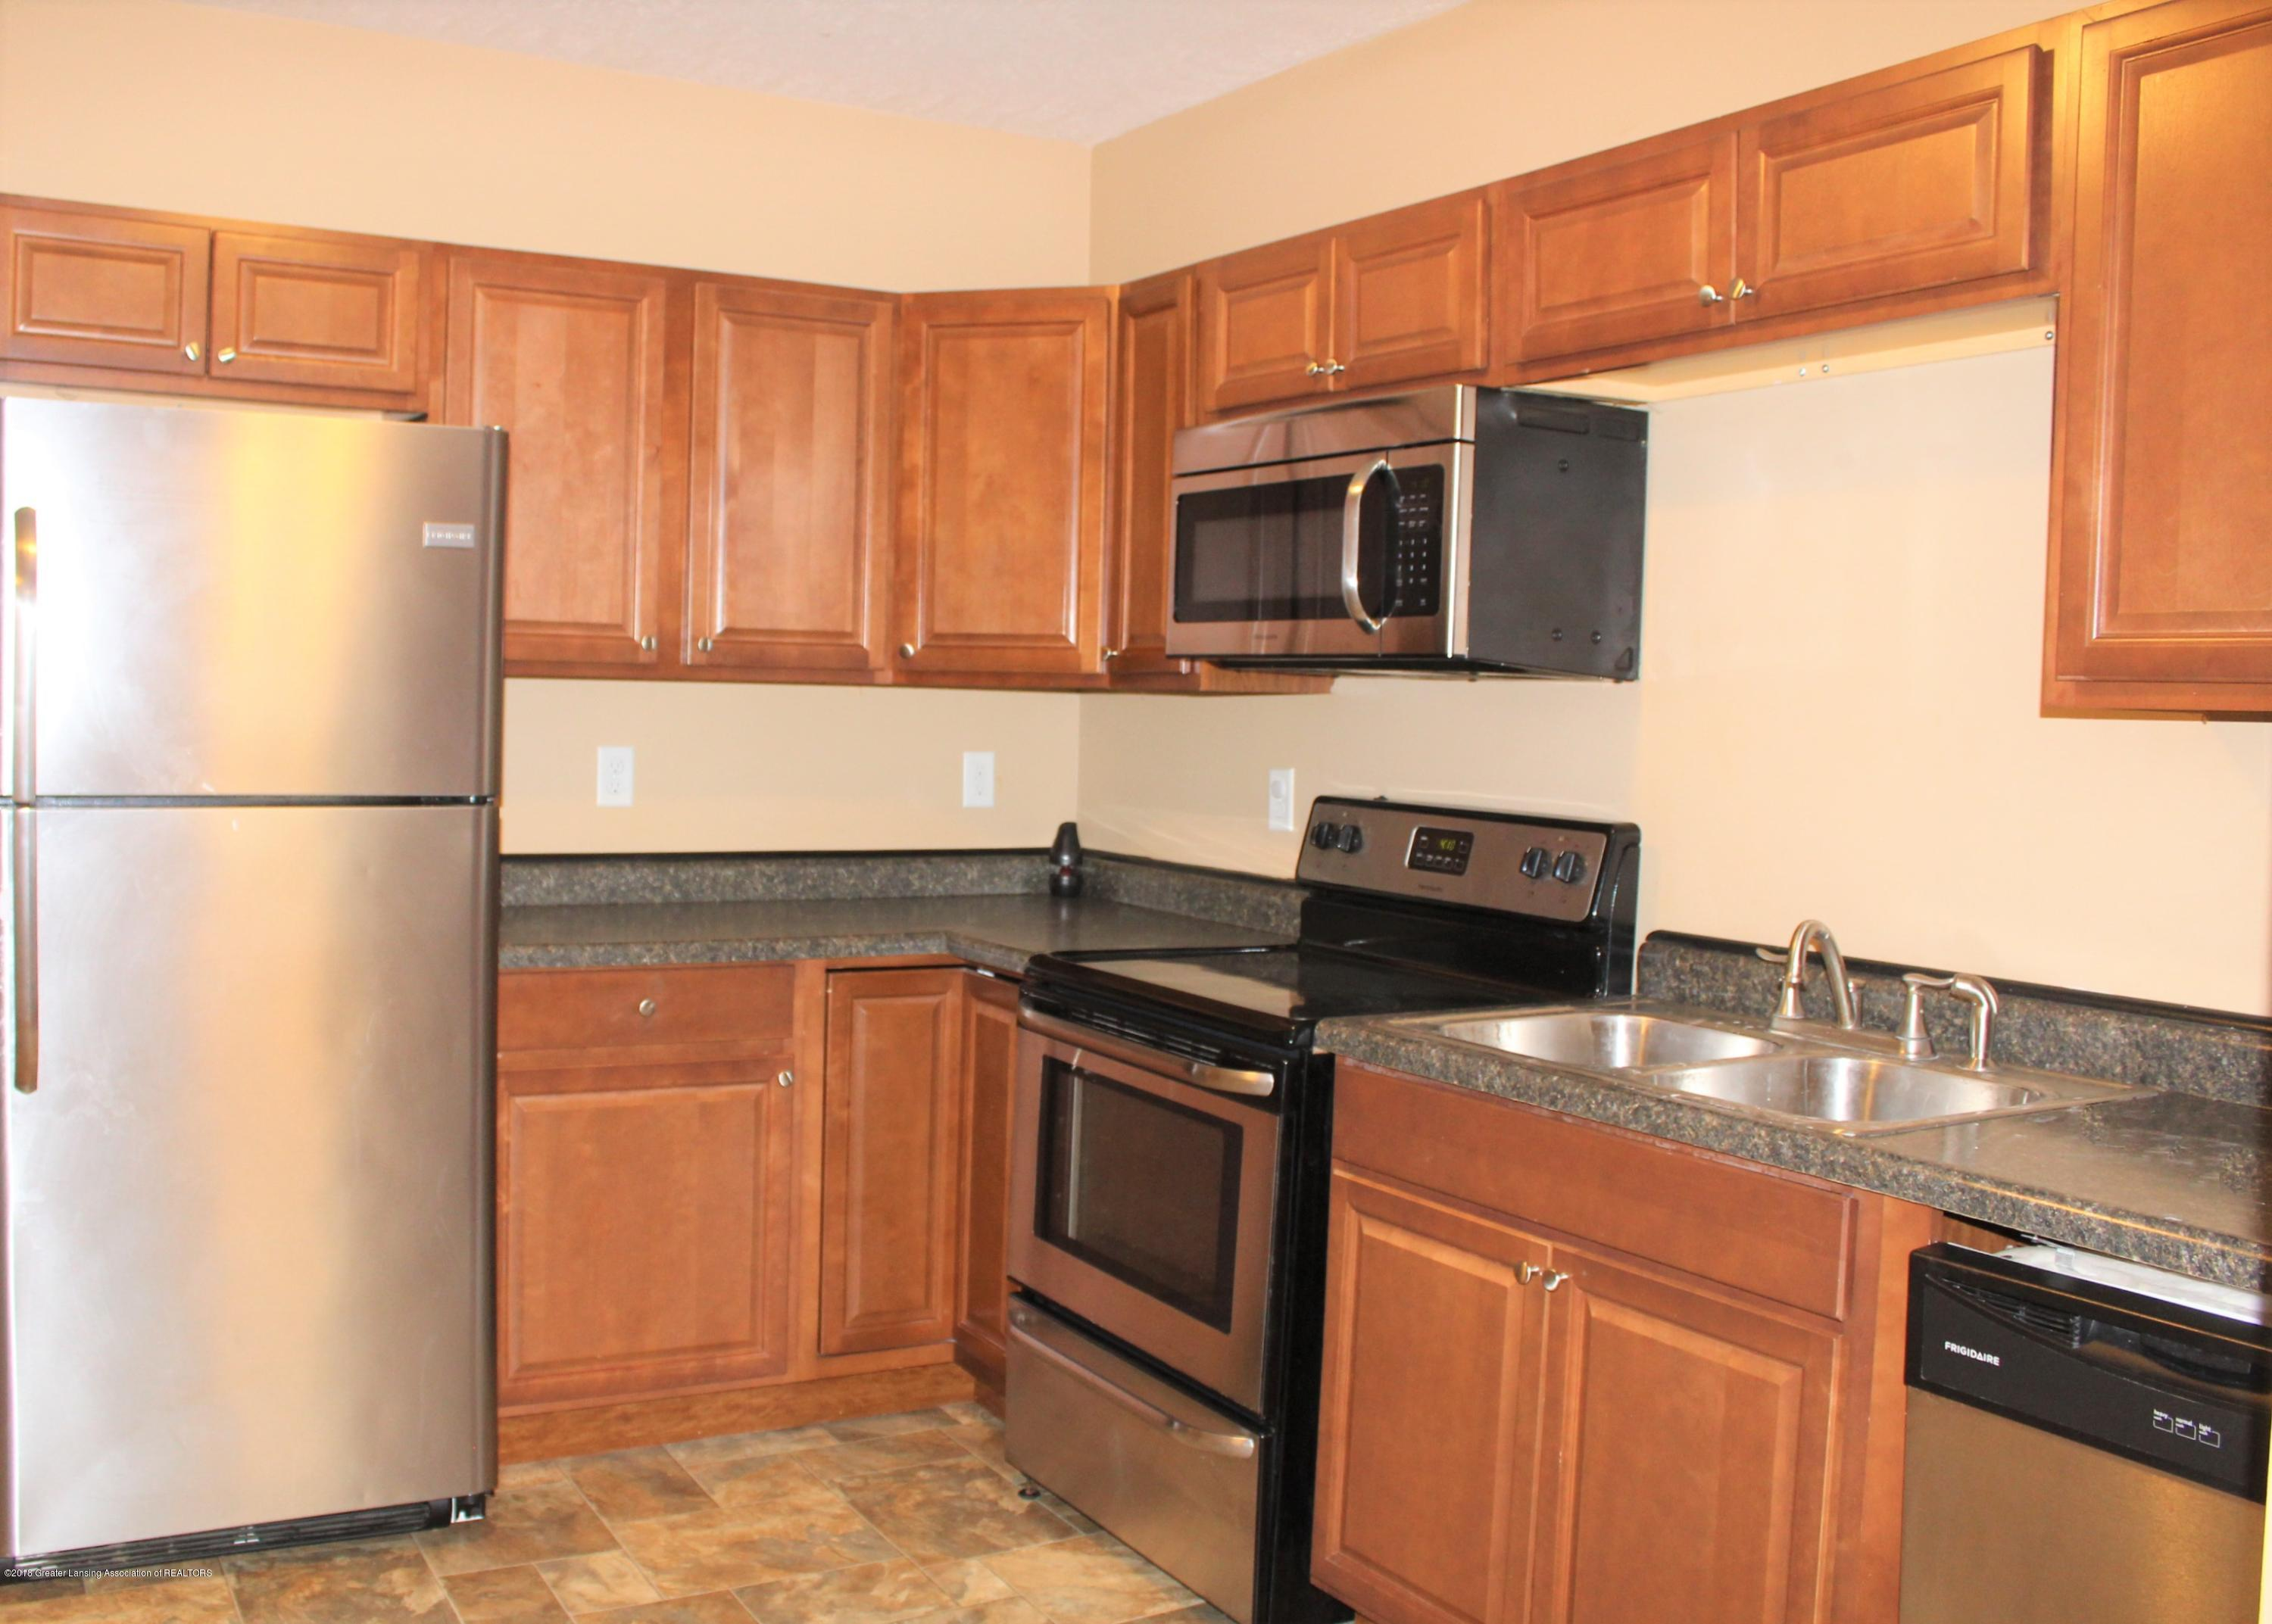 532 Bentley St - Kitchen with stainless steel appliances - 5